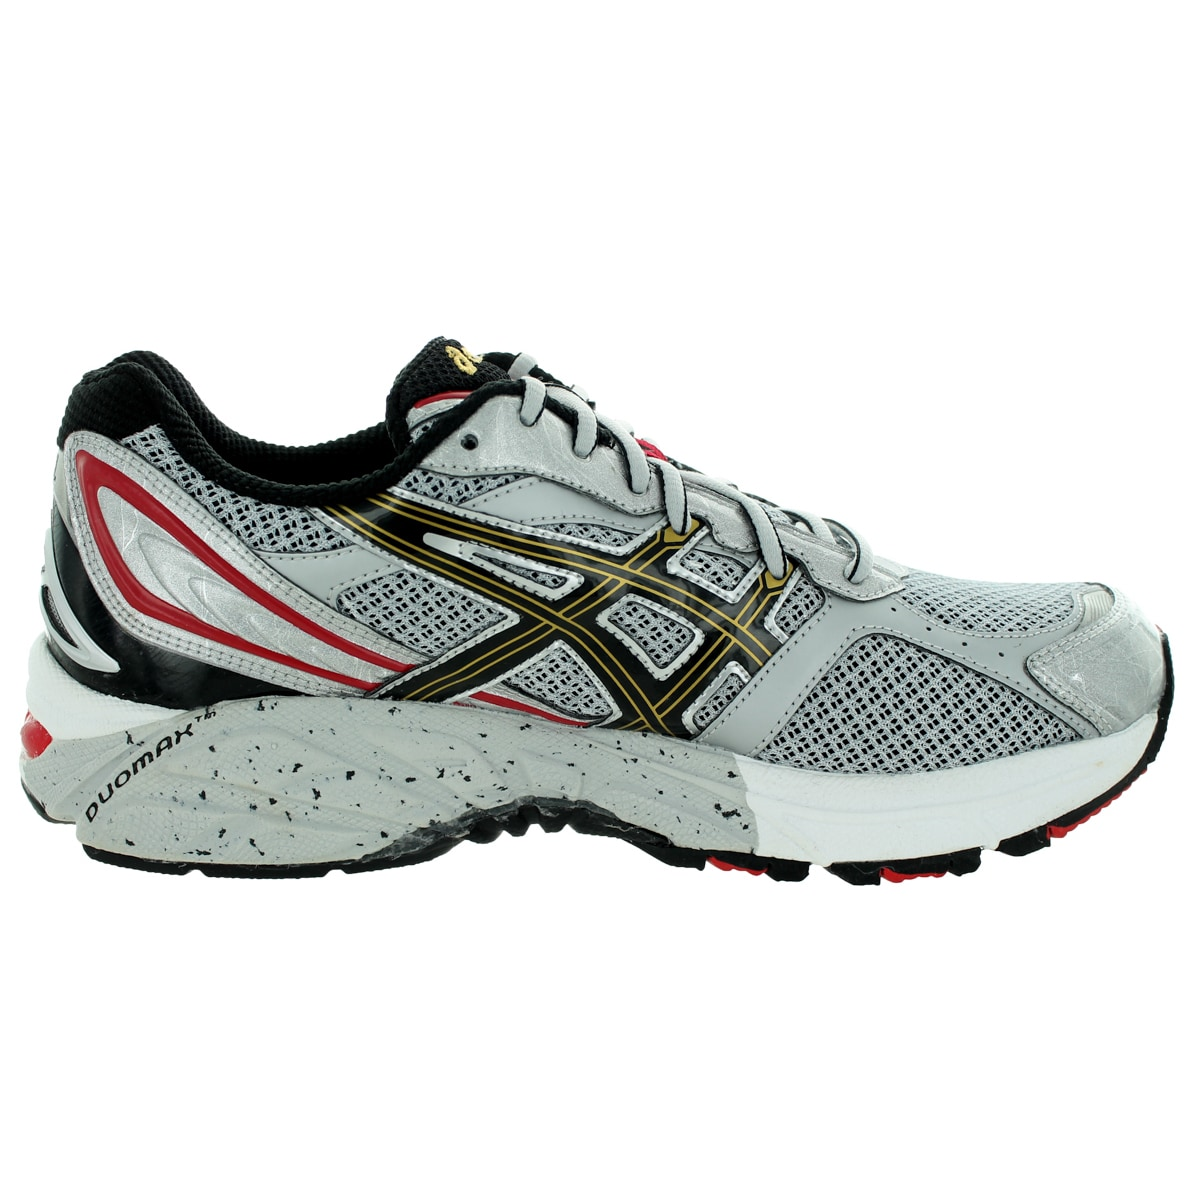 0a5472ed3aa84 Shop Asics Men's Gel-Foundation 8 (2E) Lightning/Black/True Red Running  Shoe - Free Shipping Today - Overstock - 12321148